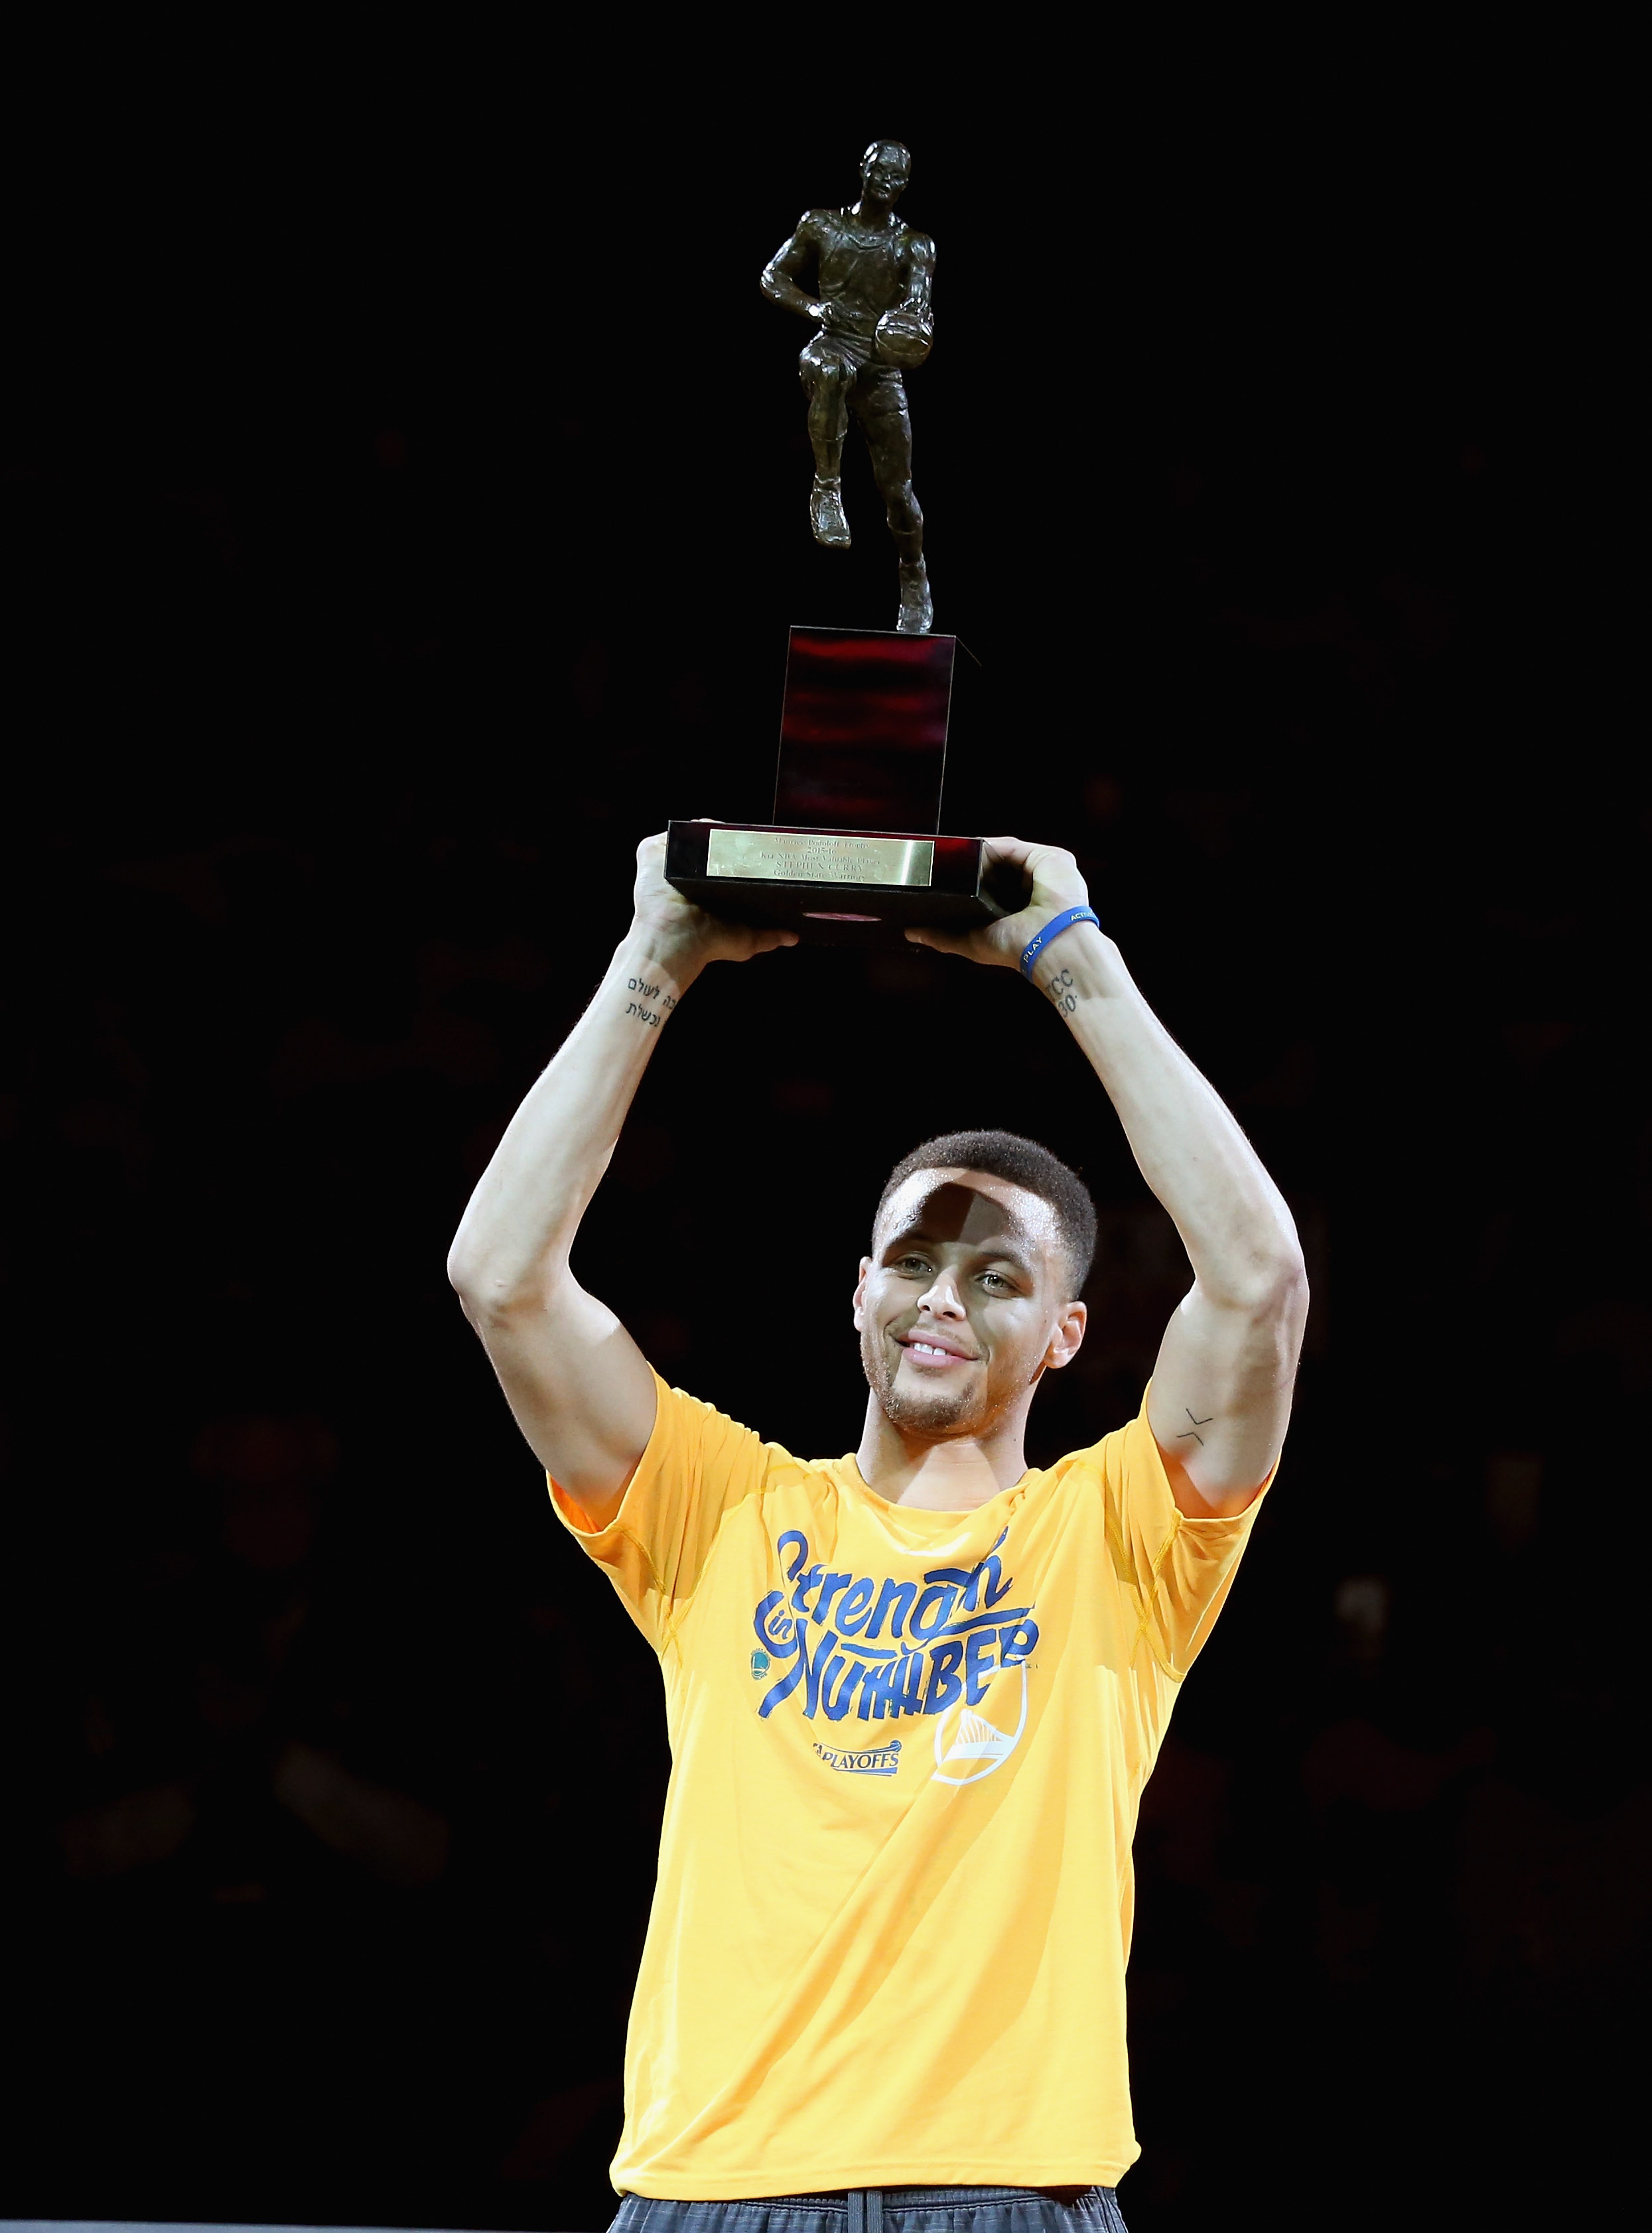 OAKLAND, CA - MAY 11: Stephen Curry #30 of the Golden State Warriors lifts up his MVP trophy before their game against the Portland Trail Blazers in Game Five of the Western Conference Semifinals during the 2016 NBA Playoffs on May 11, 2016 at Oracle Arena in Oakland, California. NOTE TO USER: User expressly acknowledges and agrees that, by downloading and or using this photograph, User is consenting to the terms and conditions of the Getty Images License Agreement.   Ezra Shaw/Getty Images/AFP